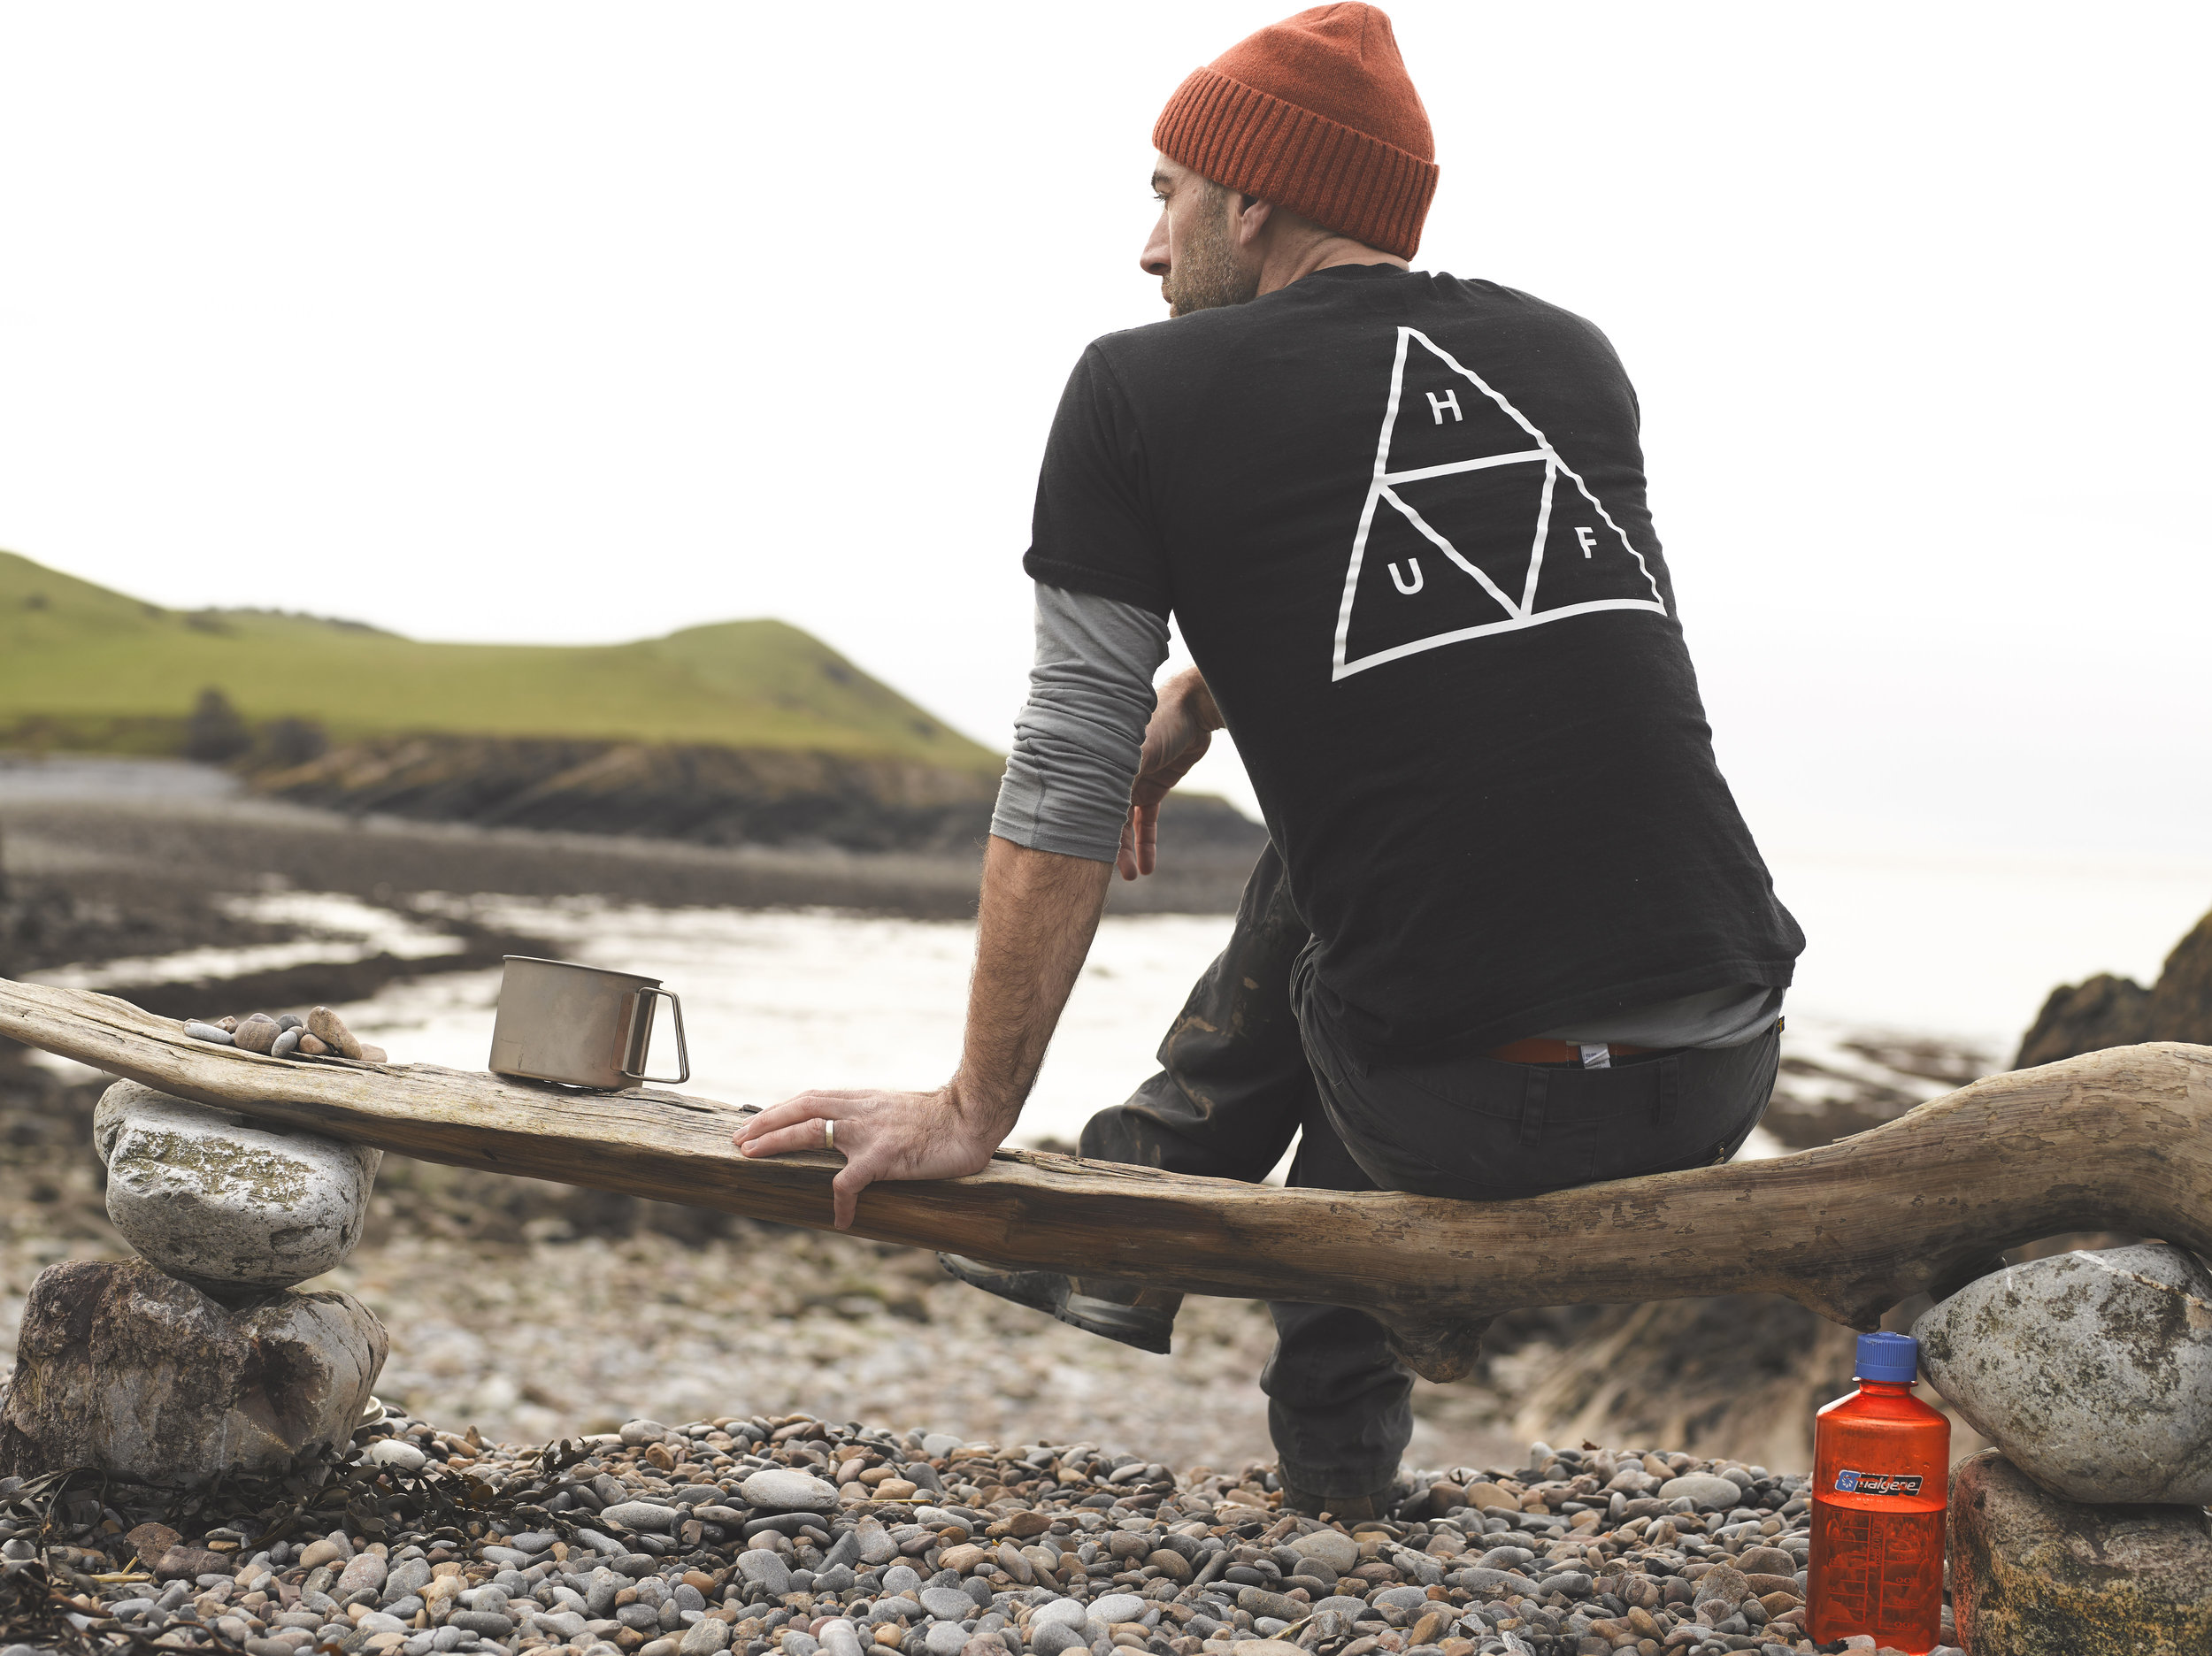 Beach foraging and contemplation